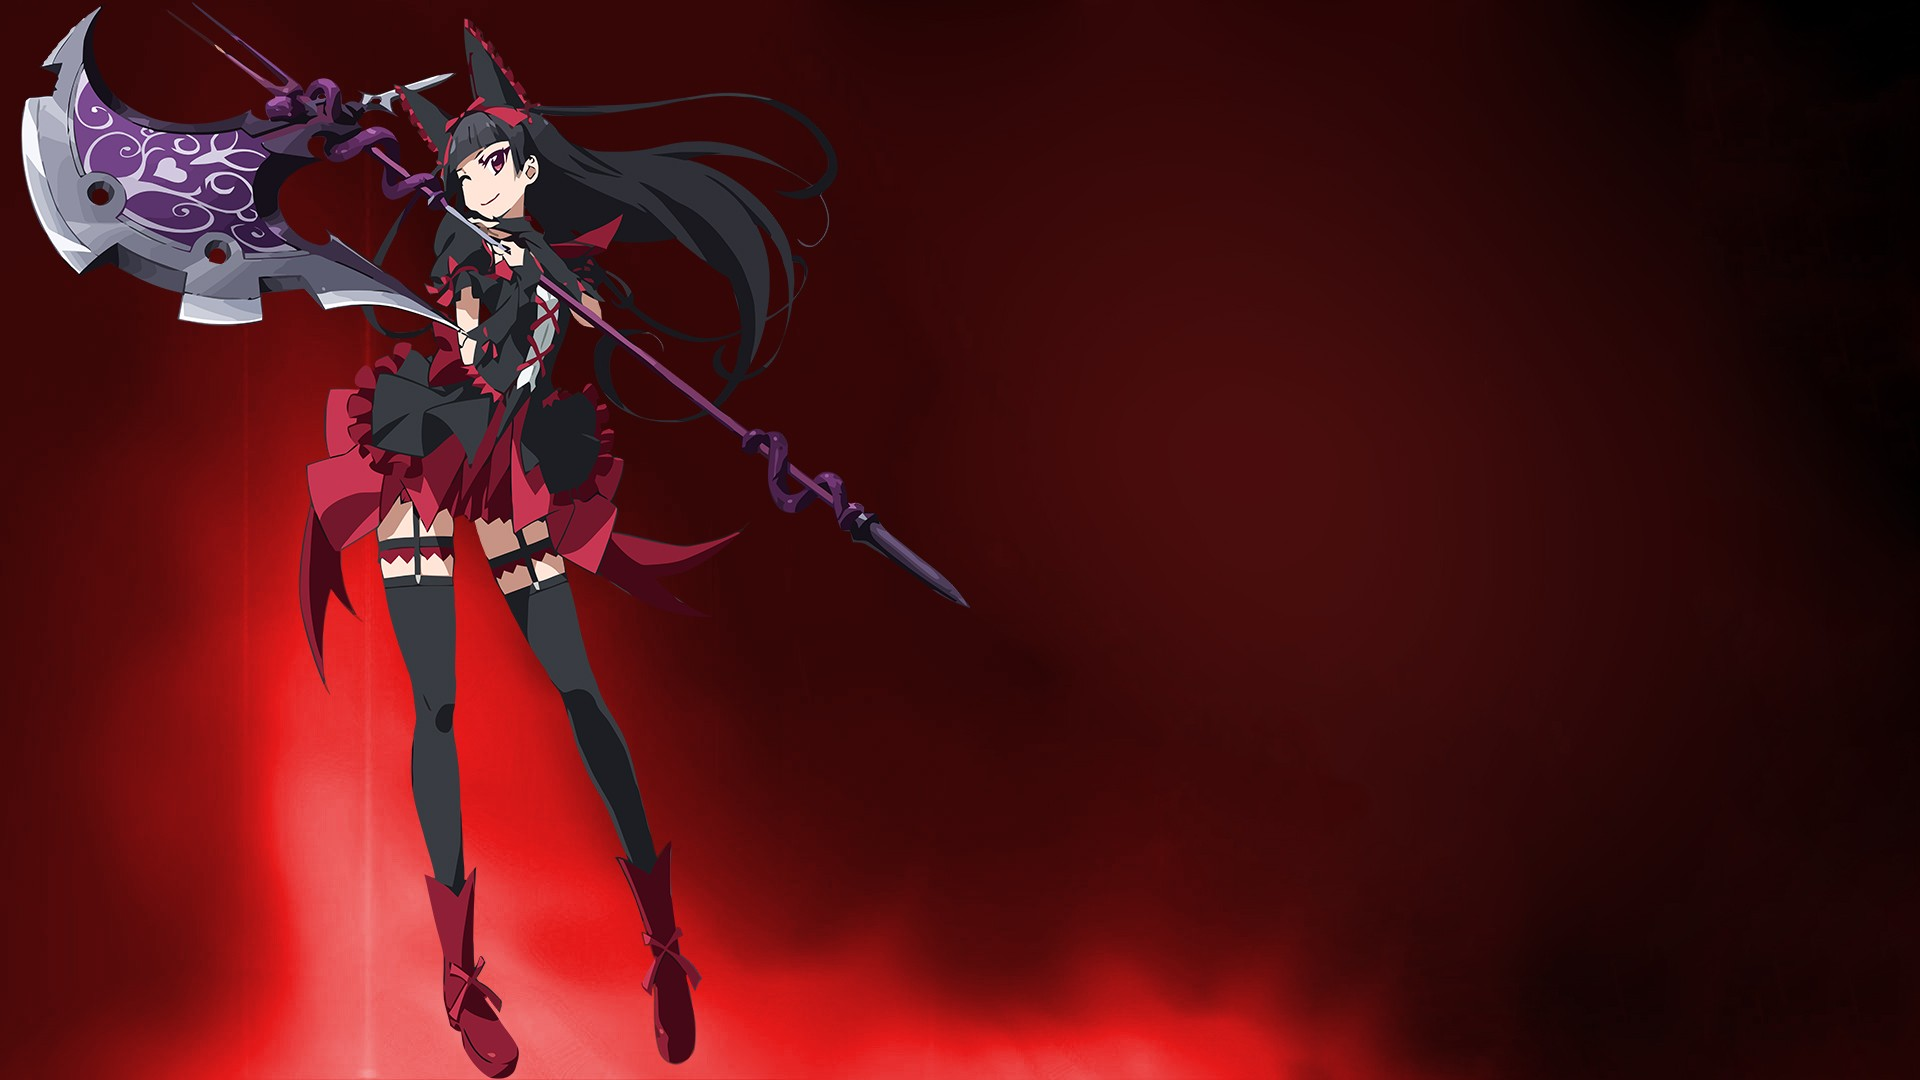 Rory Mercury Wallpaper Download Free Stunning Backgrounds For